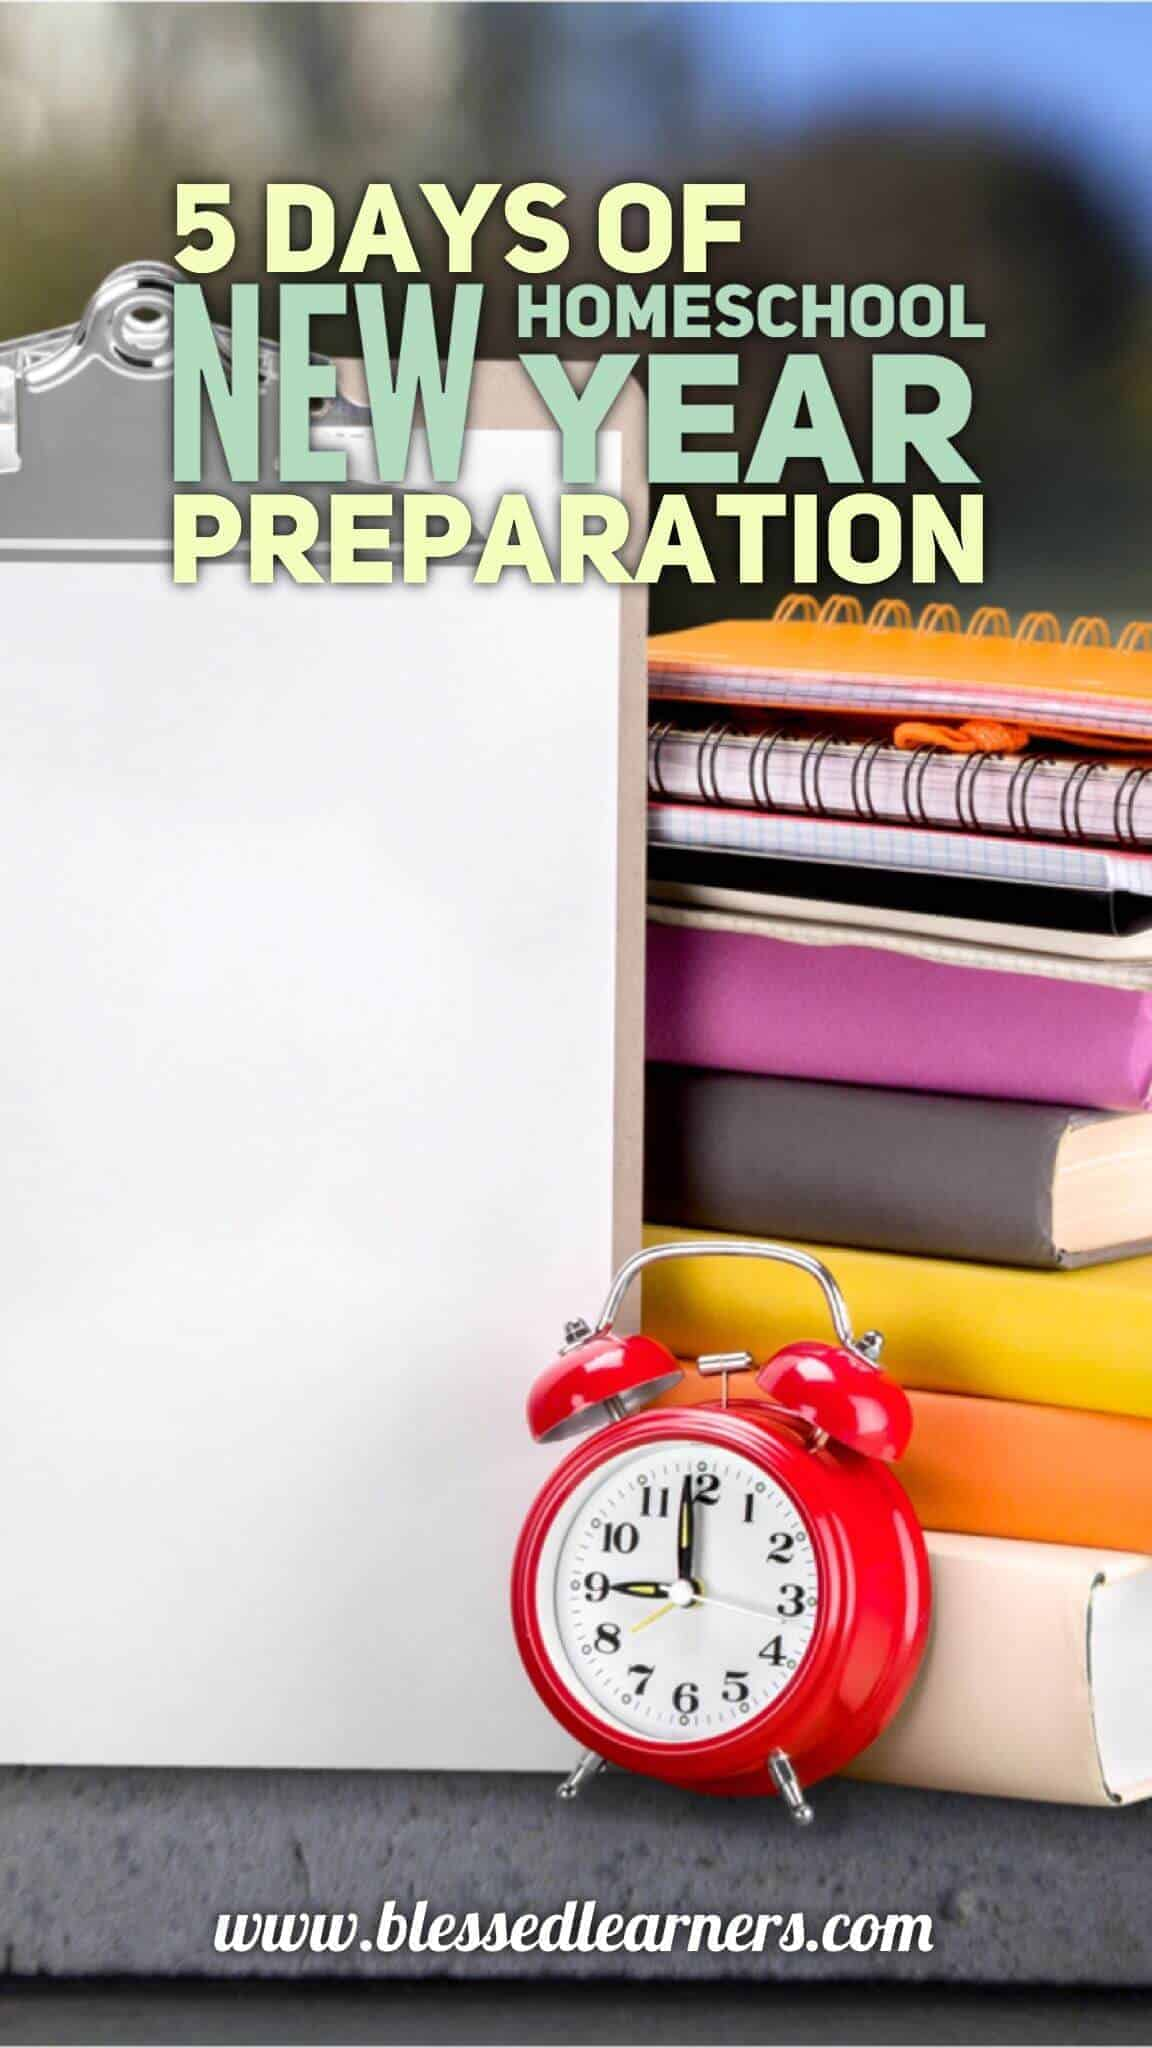 5 Days of New Homeschool Year Preparation helps you to prepare your new homeschool year. You will start some new things and to fix the previous flaws.